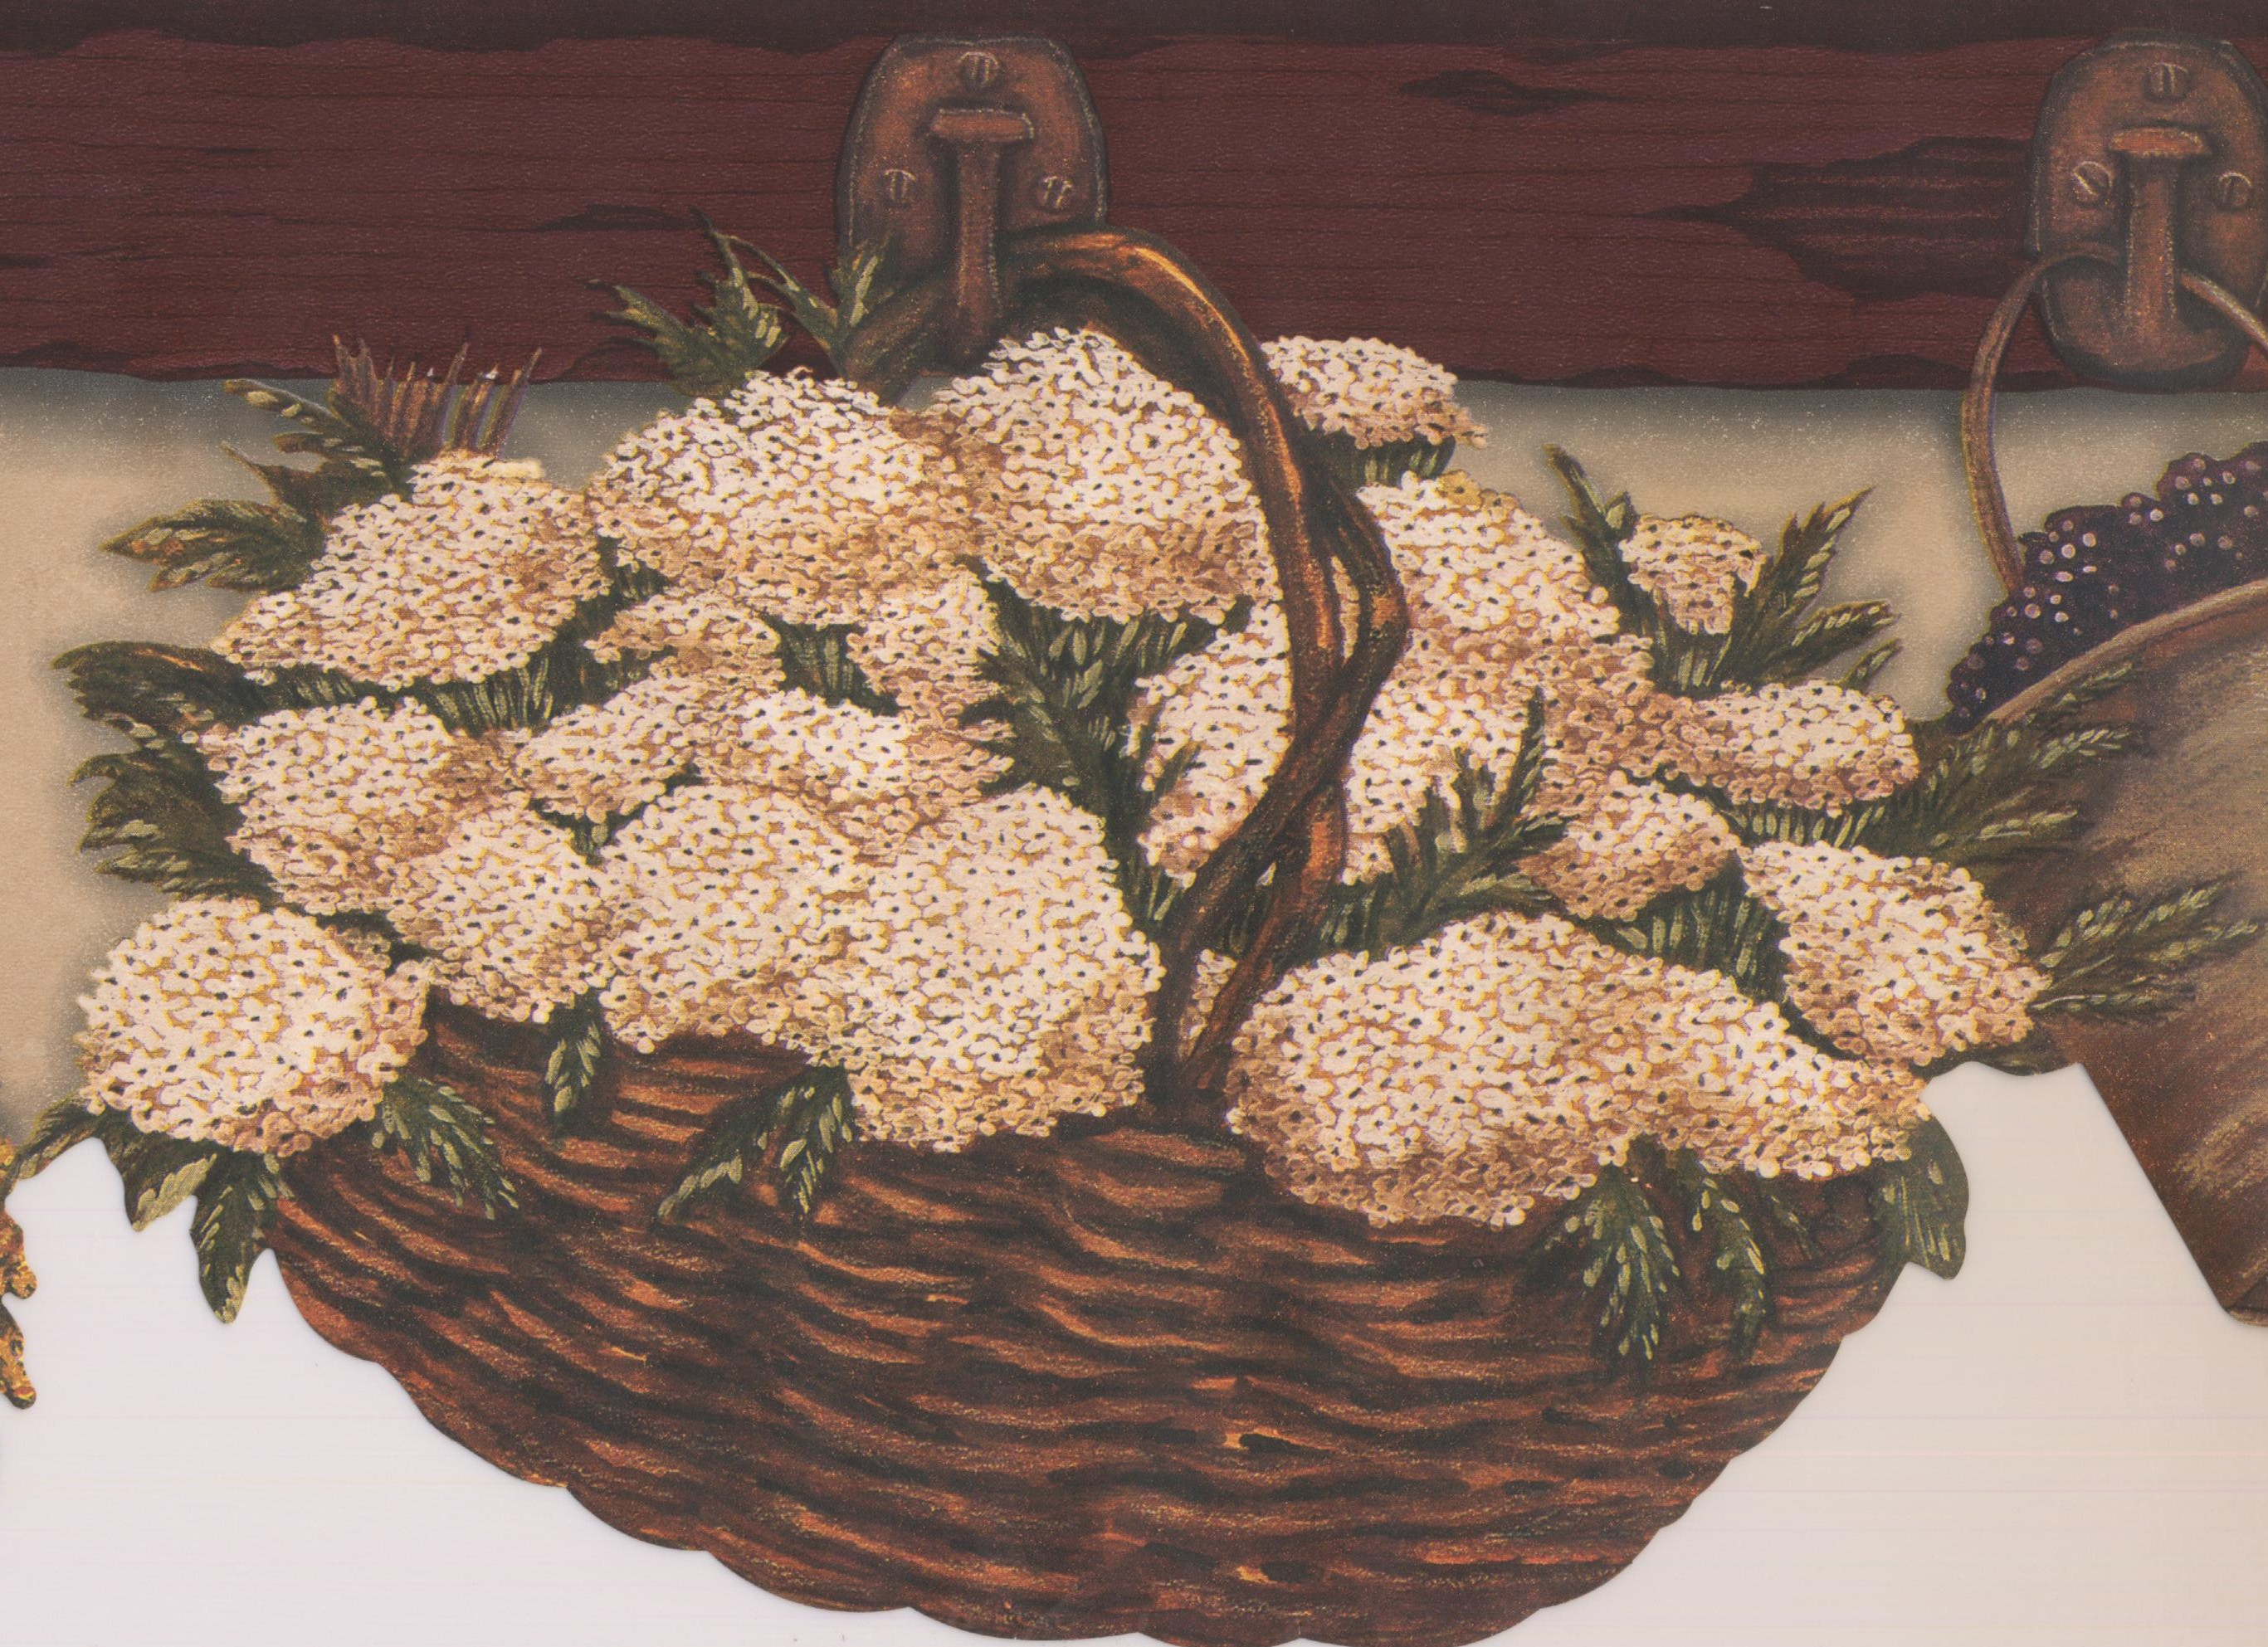 Brown Baskets Flowers Hanging On Kitchen Wall Hooks Country Wallpaper Border Retro Design Roll 15 X 6 5